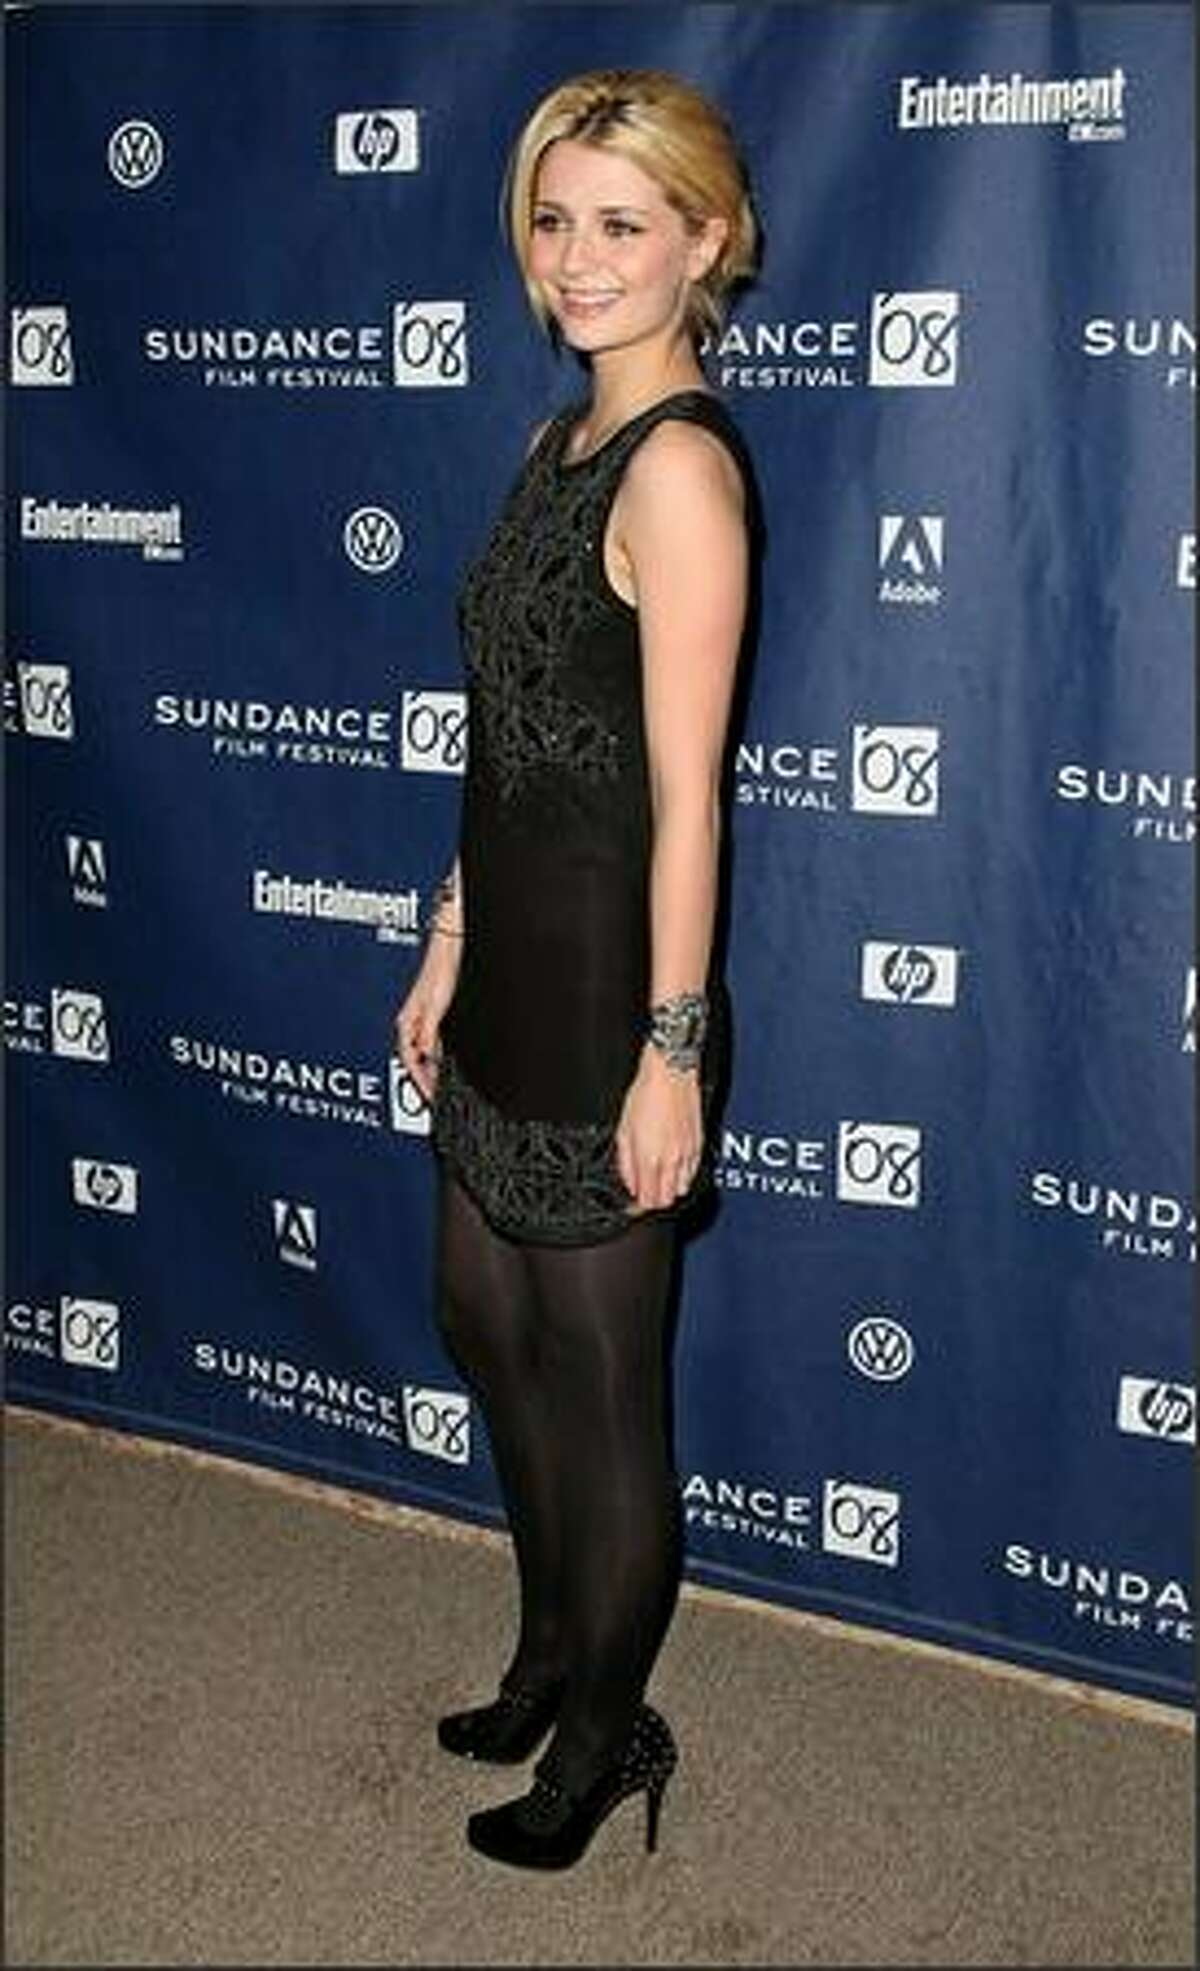 """Mischa Barton arrives at the premiere of """"Assassination of a High School President"""" held at the Eccles Theatre during the 2008 Sundance Film Festival in Park City, Utah, Jan. 23, 2008."""